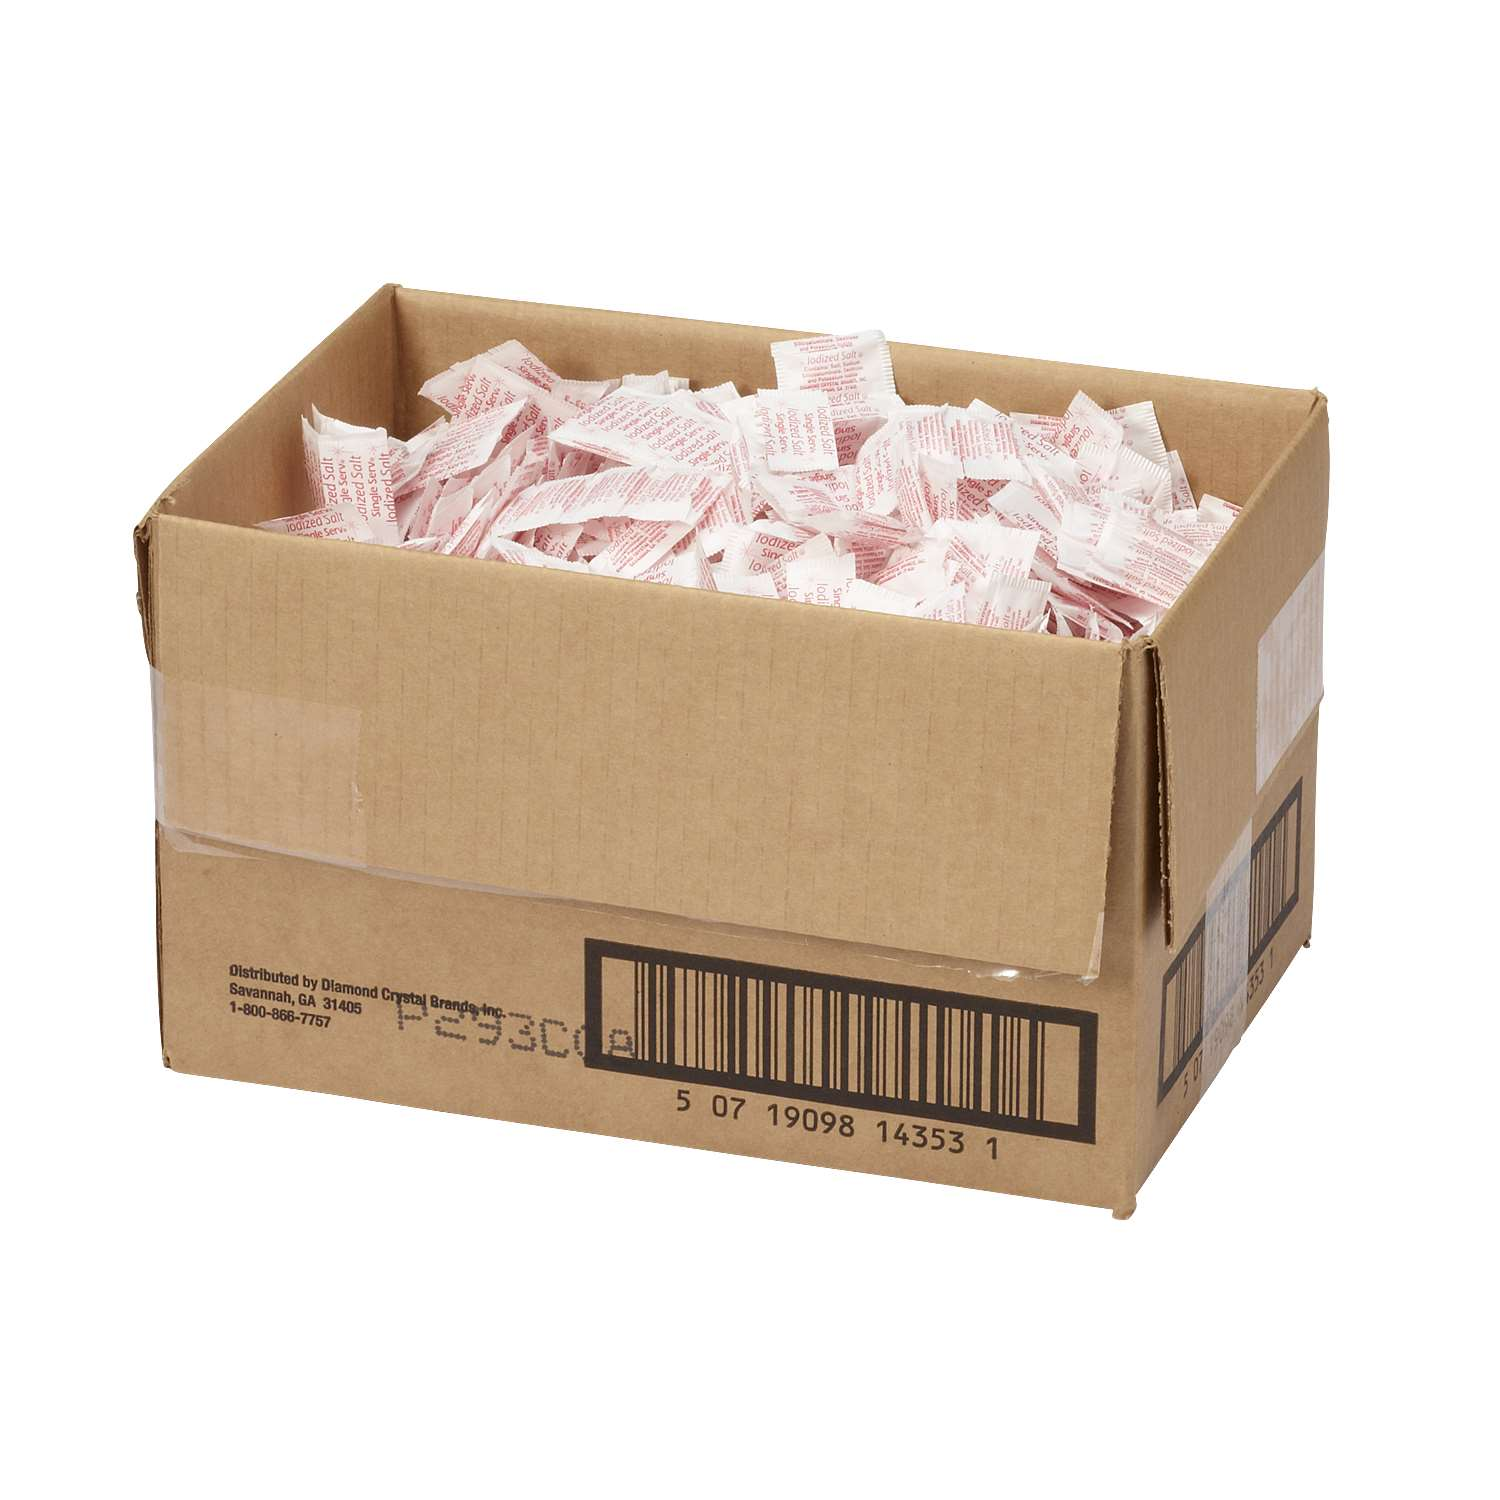 Salt Packets .6 Gram Packet 3000 Packets per Case